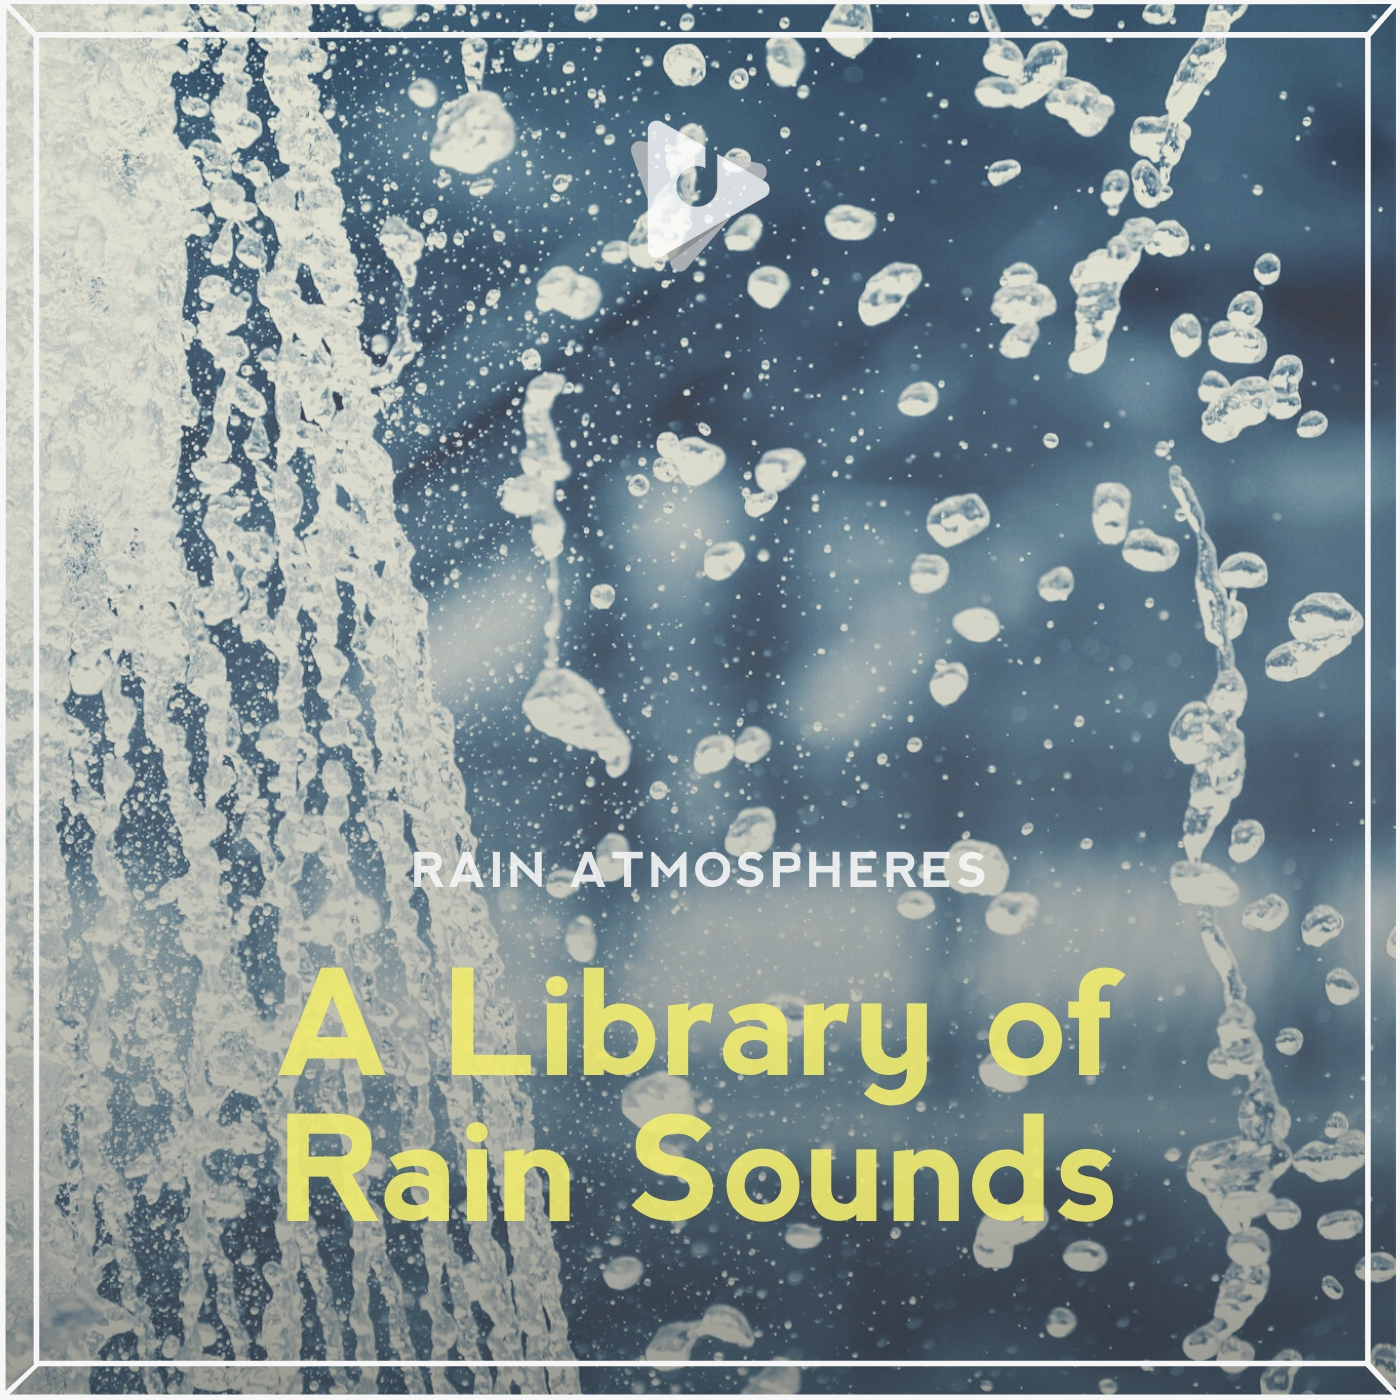 A Library of Rain Sounds